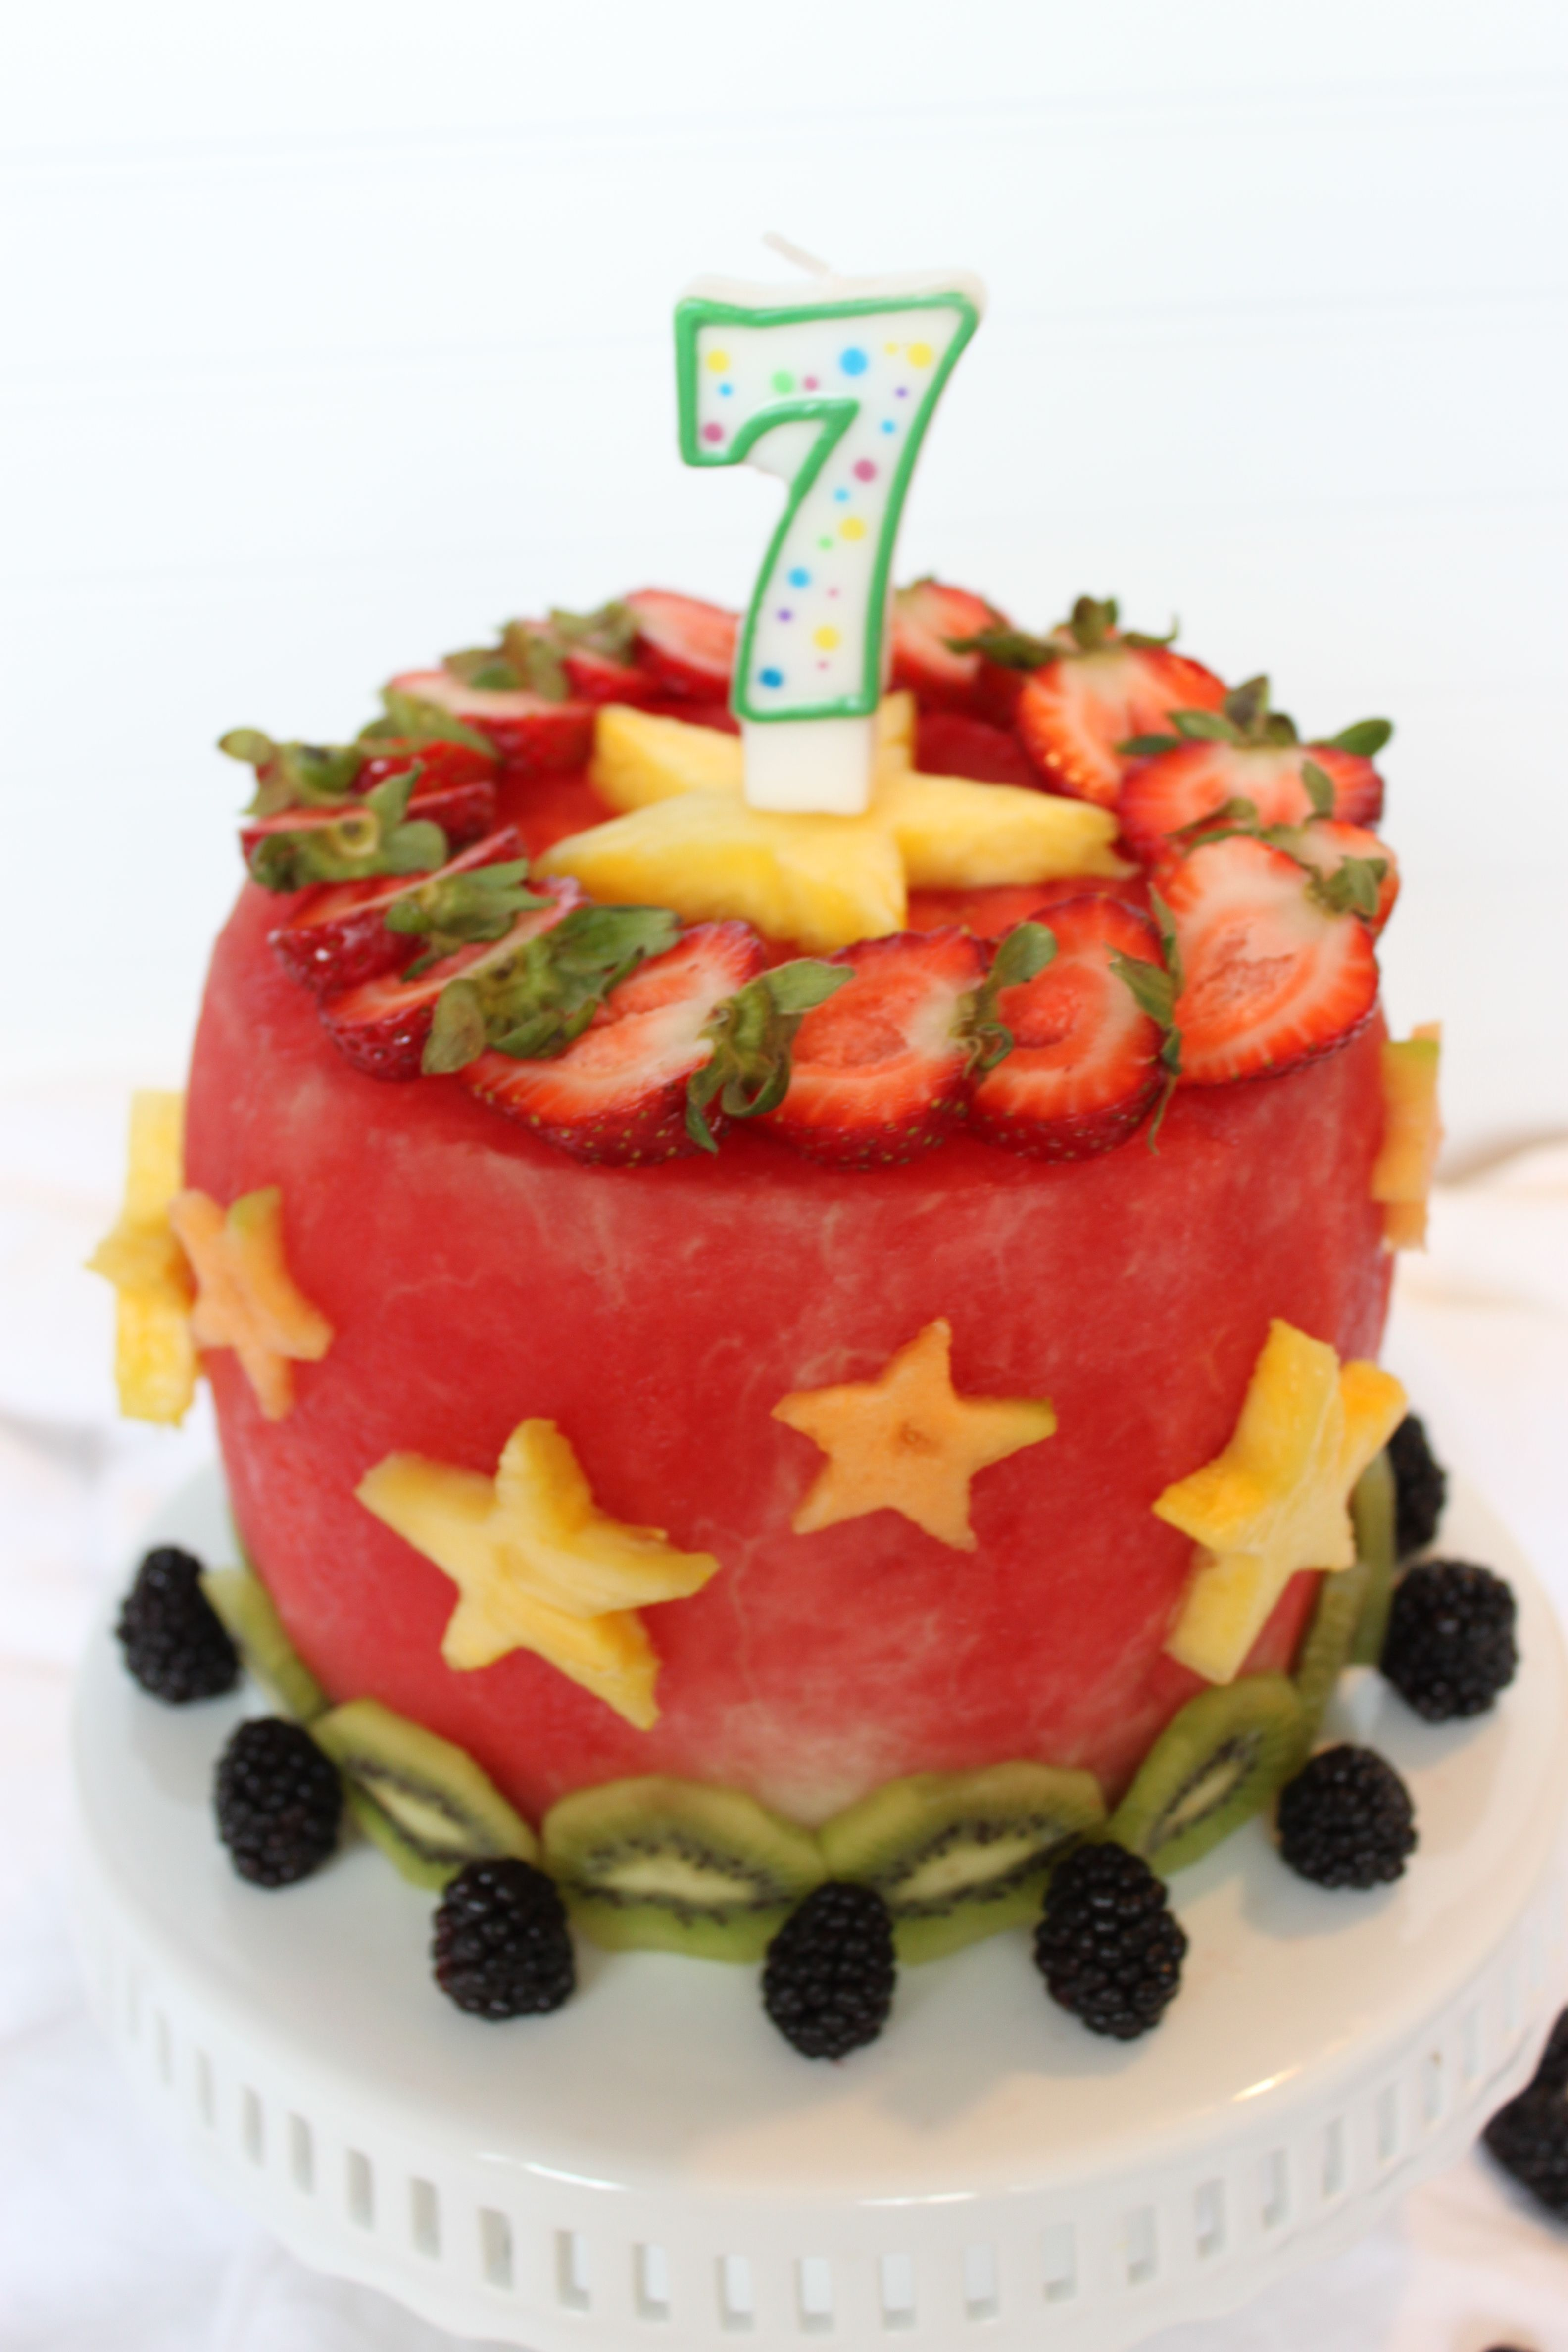 Another Fruit Cake This Would Be Perfect For Birthdays Since EVERYONE In My Family Is On That Crazy Diet